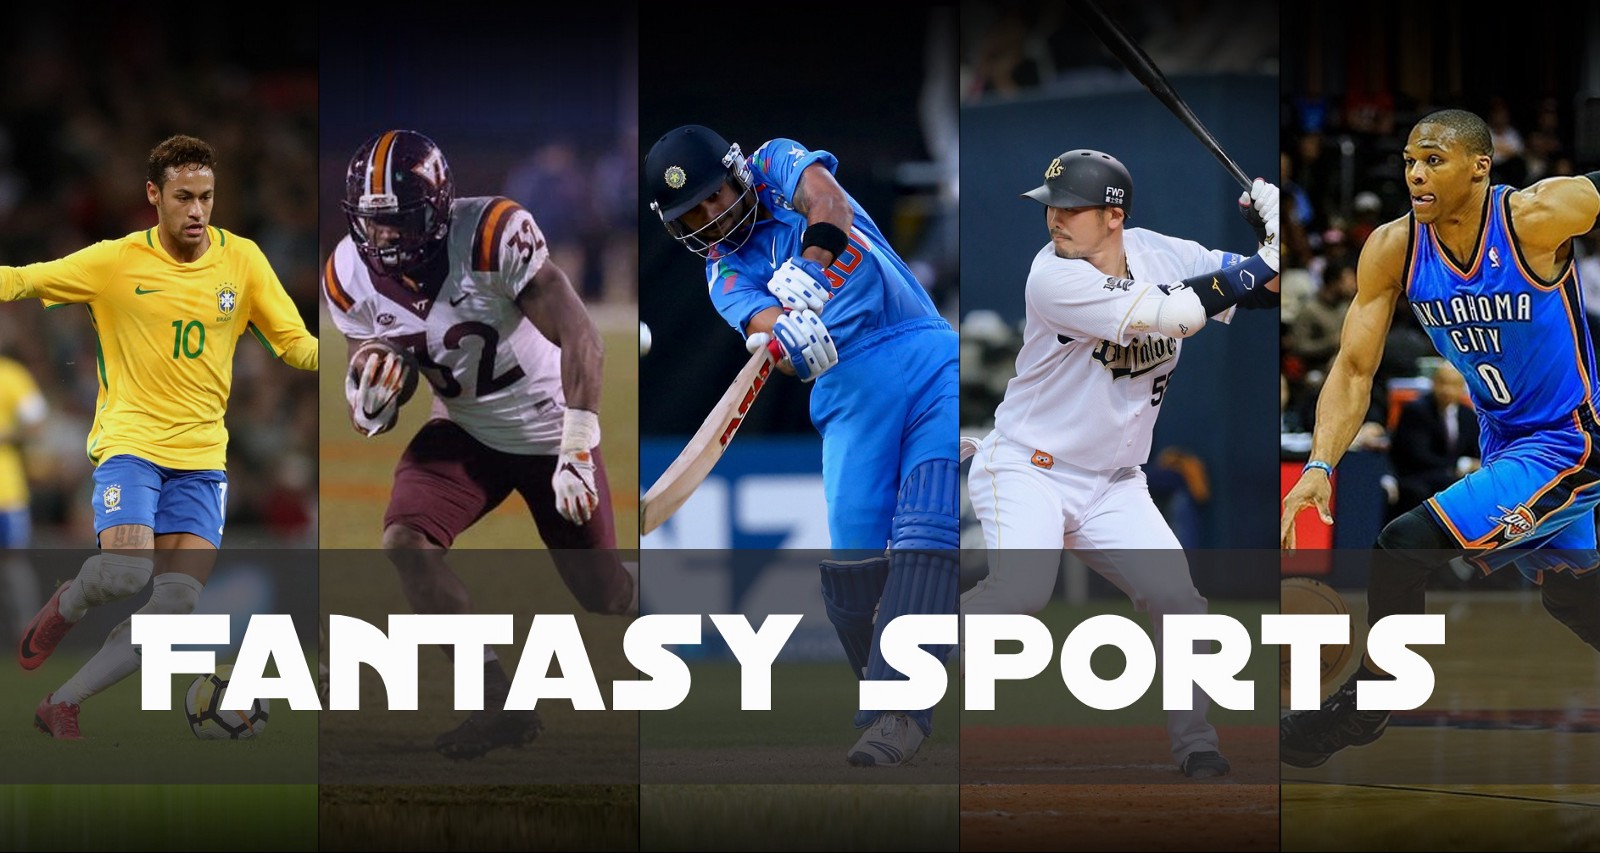 Fantasy Sports App Development Companies